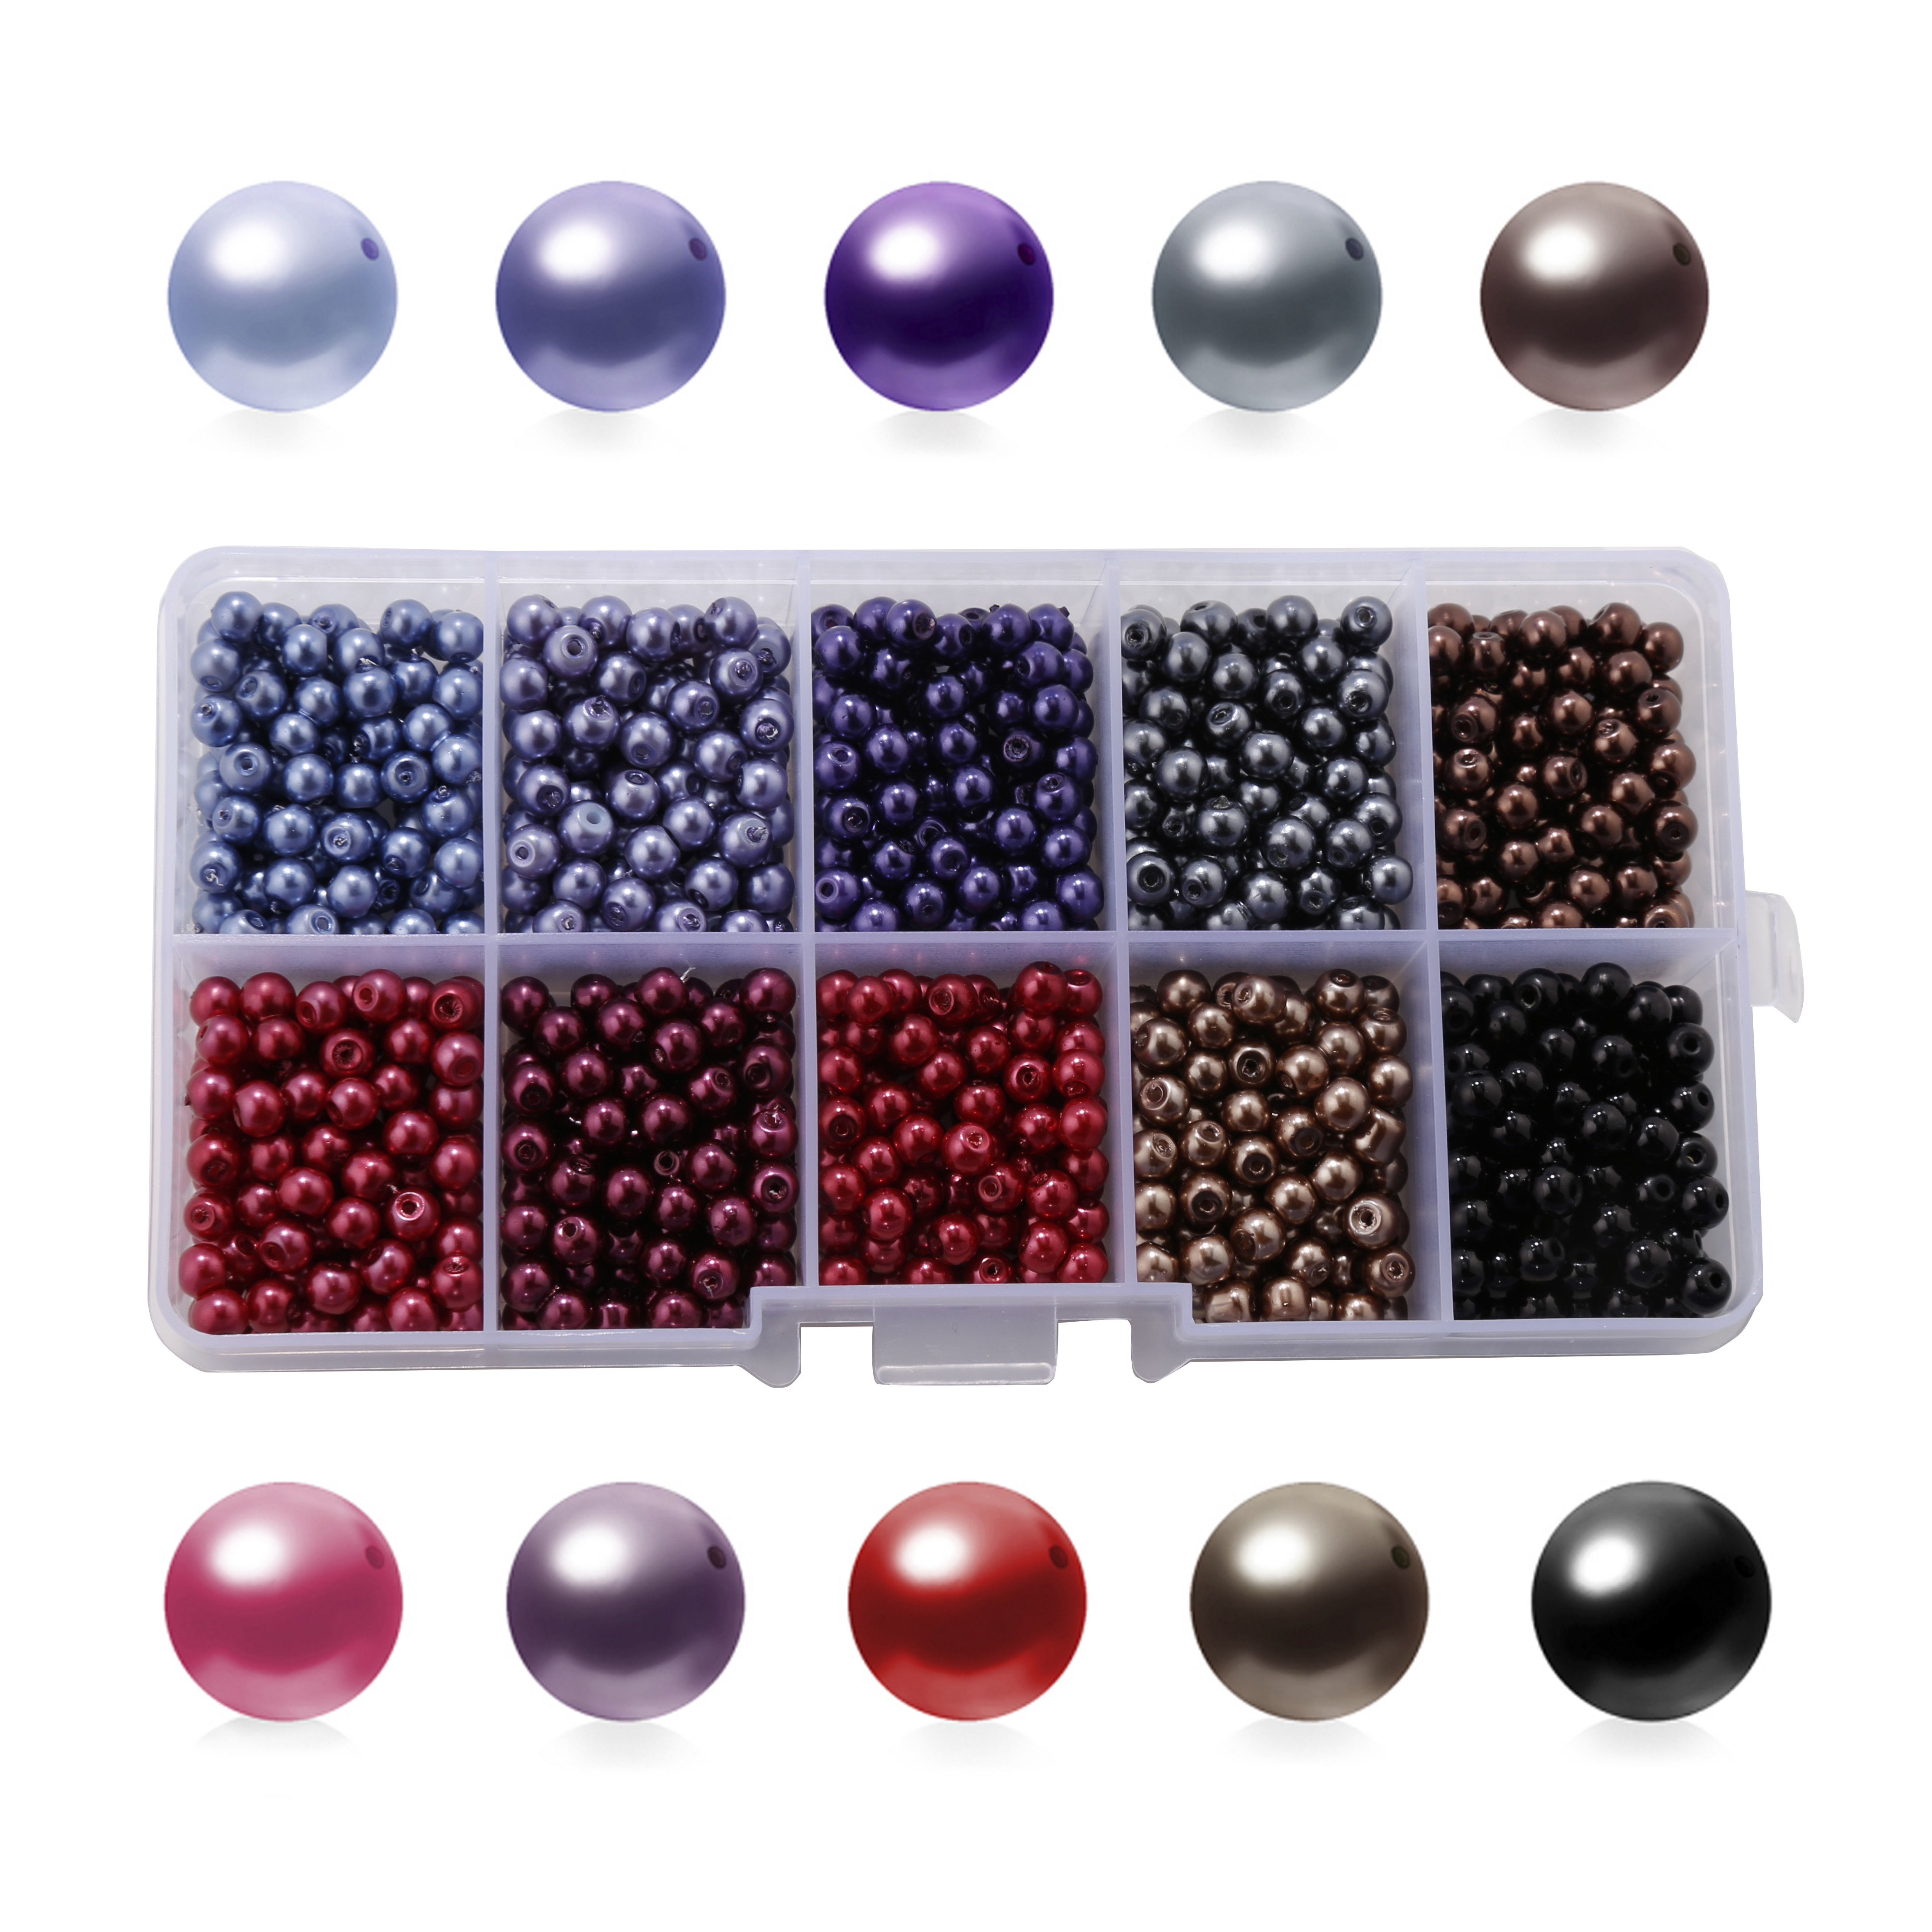 <font><b>1000</b></font> pcs/box 4mm Glass Pearl Paint Beads Round Bead Loose Scattered Bead Combination <font><b>10</b></font> colors/box DIY Jewelry Finding Wholesale image